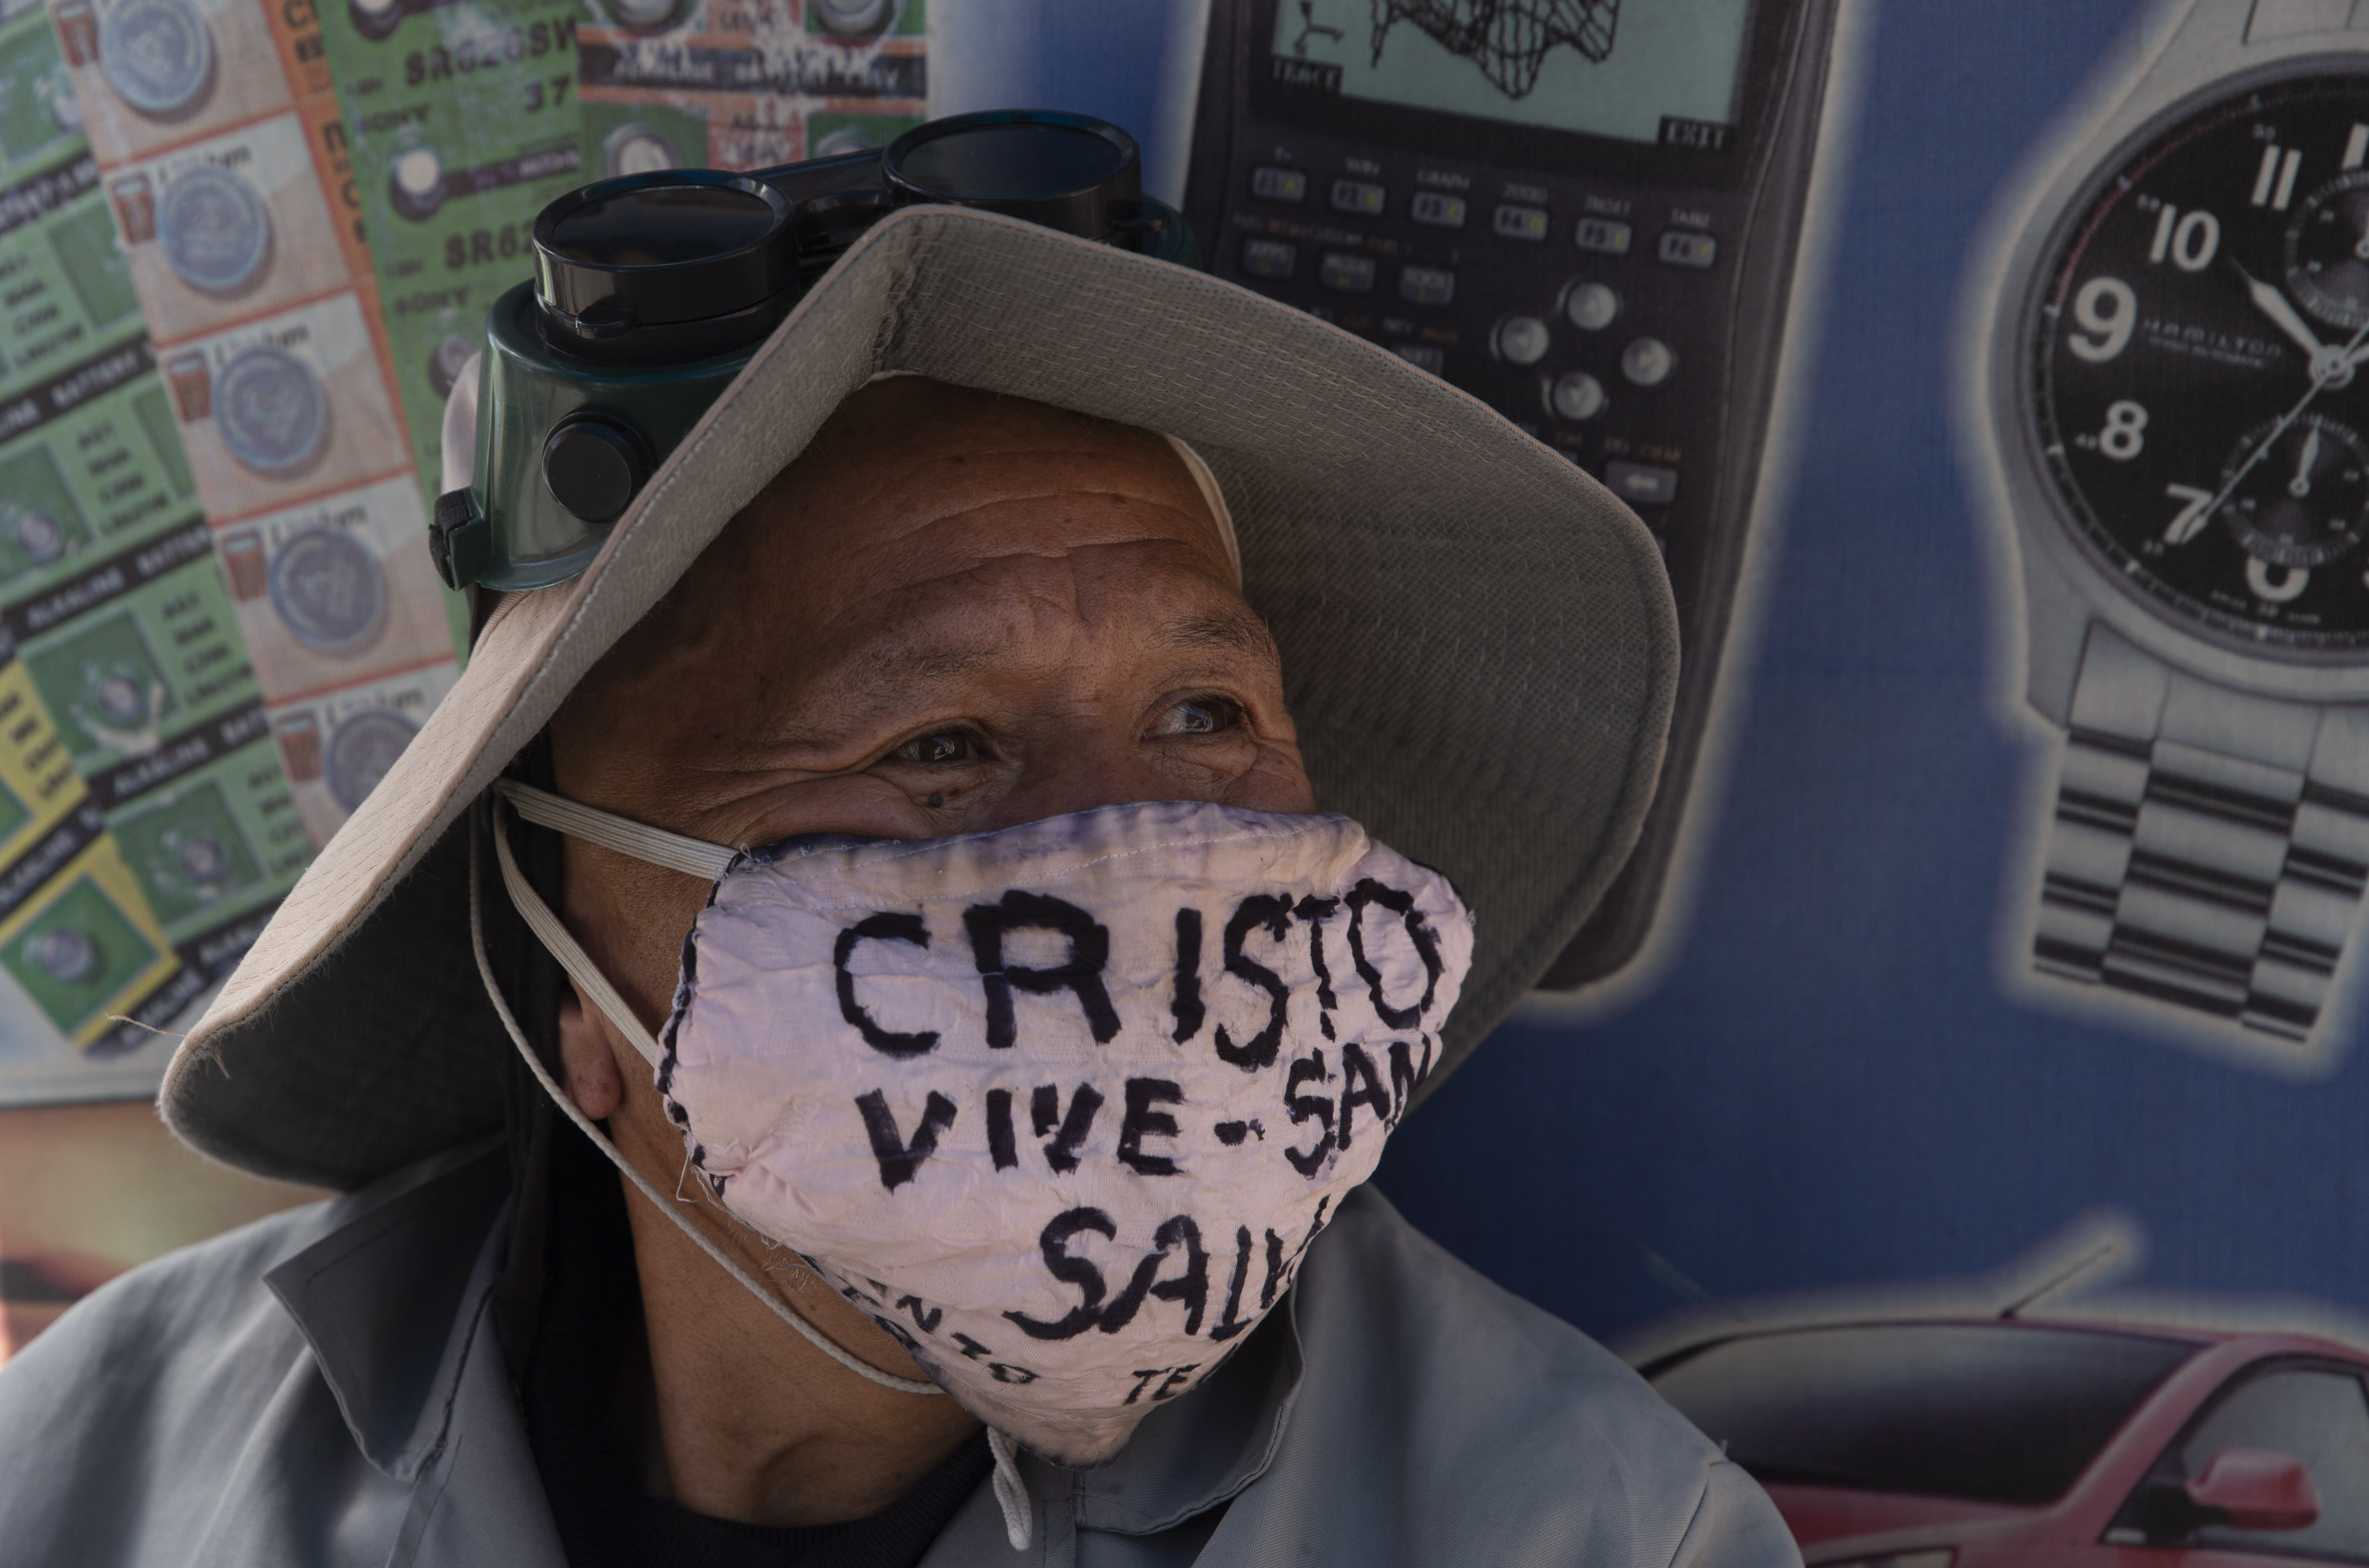 """A man wearing a protective face mask marked with a message that reads in Spanish: """"Christ lives, heals and saves,"""" in La Paz, Bolivia, Tuesday, July 21, 2020, amid the new coronavirus pandemic. (AP Photo/Juan Karita)"""